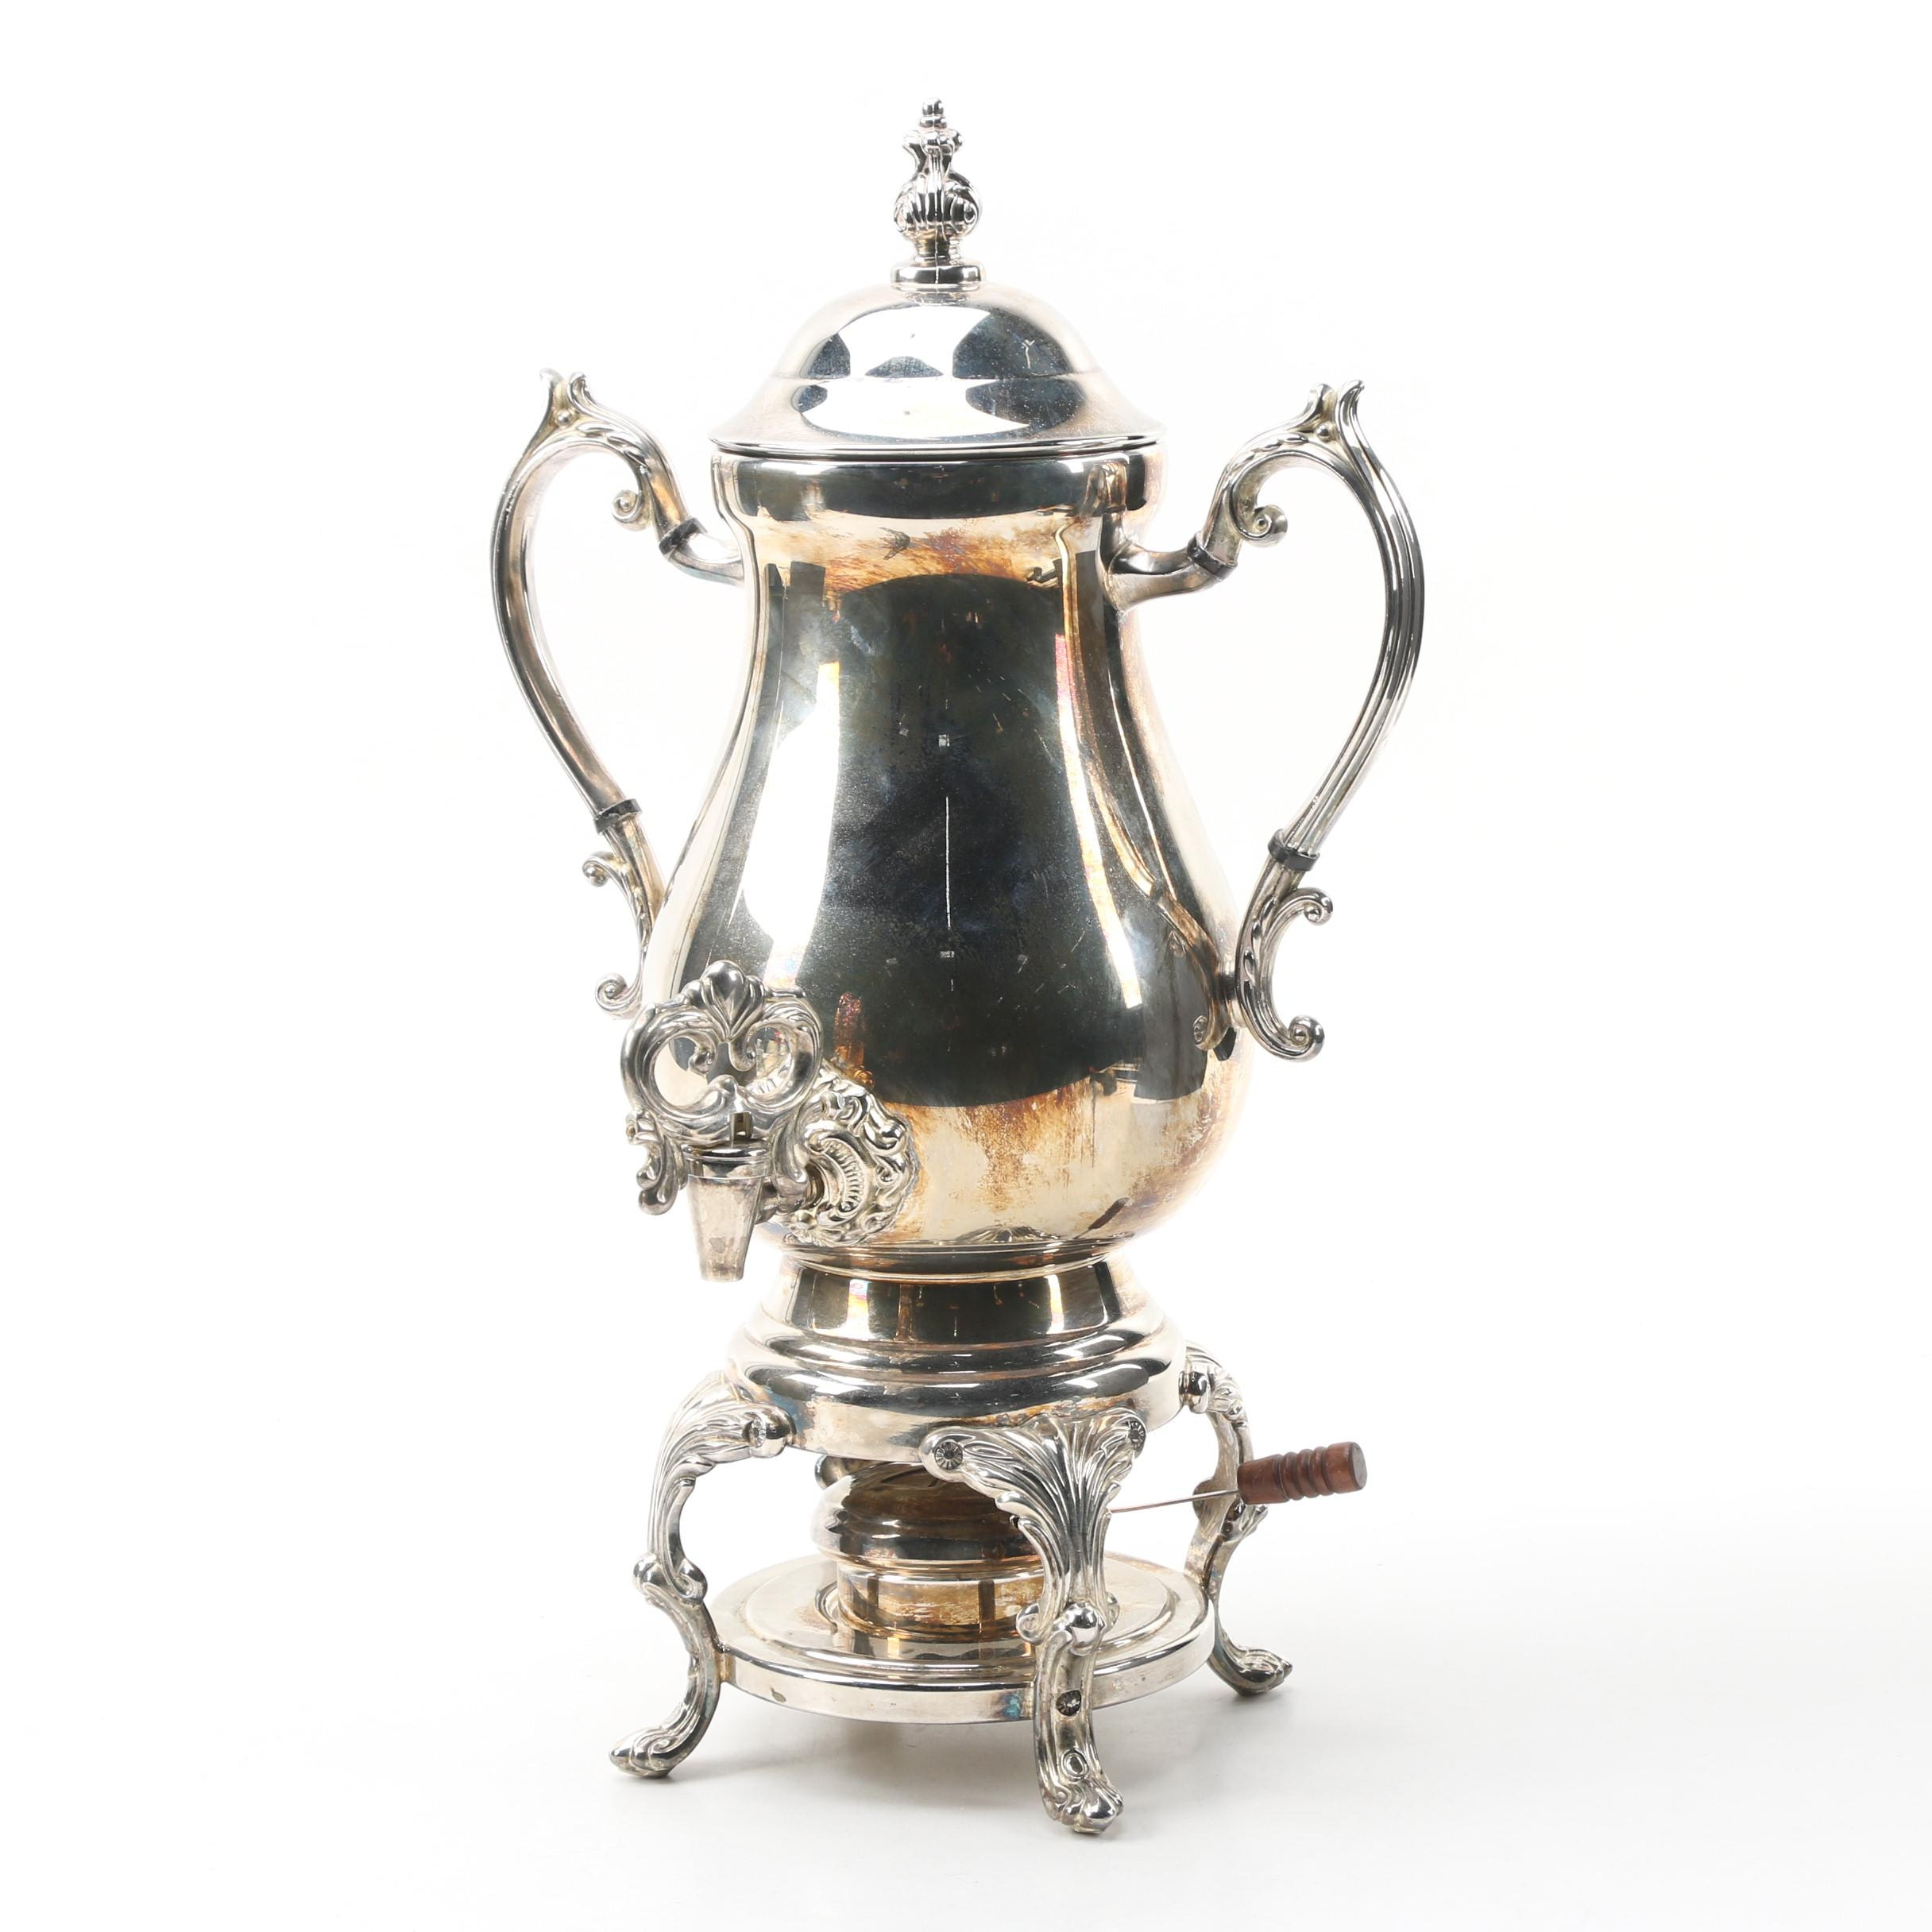 Towle Silver Plate Hot Water Urn, 20th Century